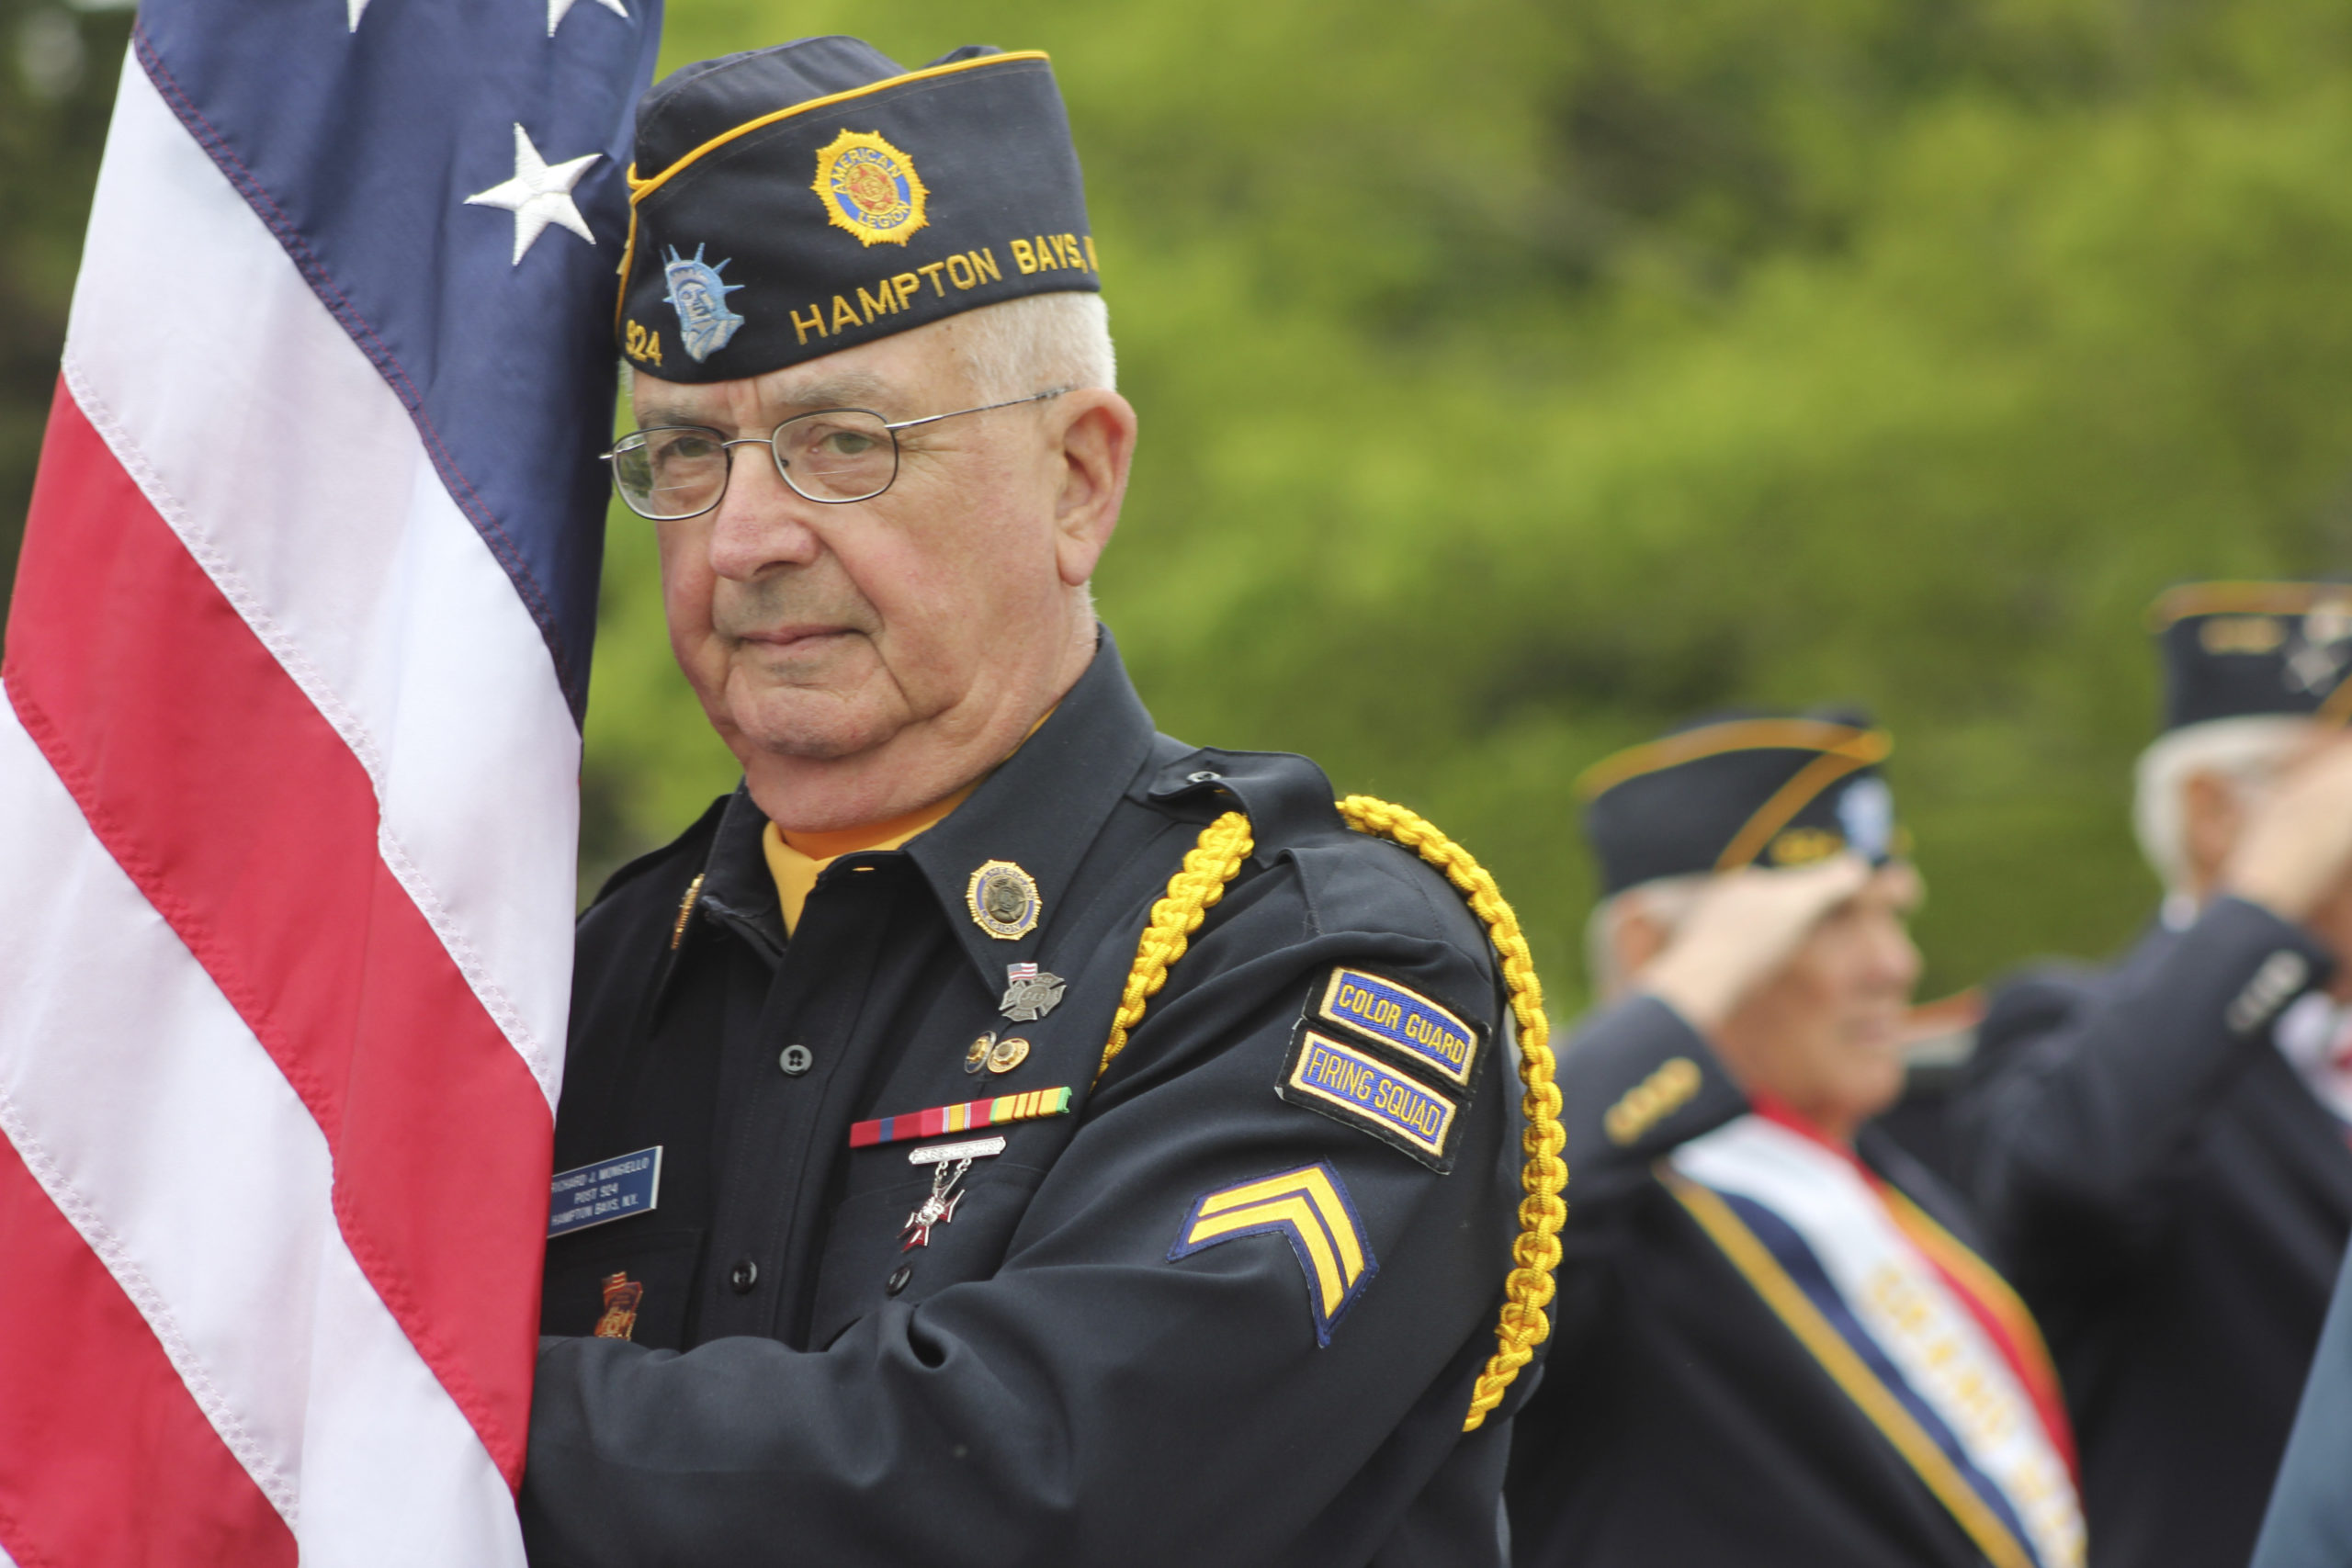 Richard Mongiello during the 2018 Memorial Day observance.